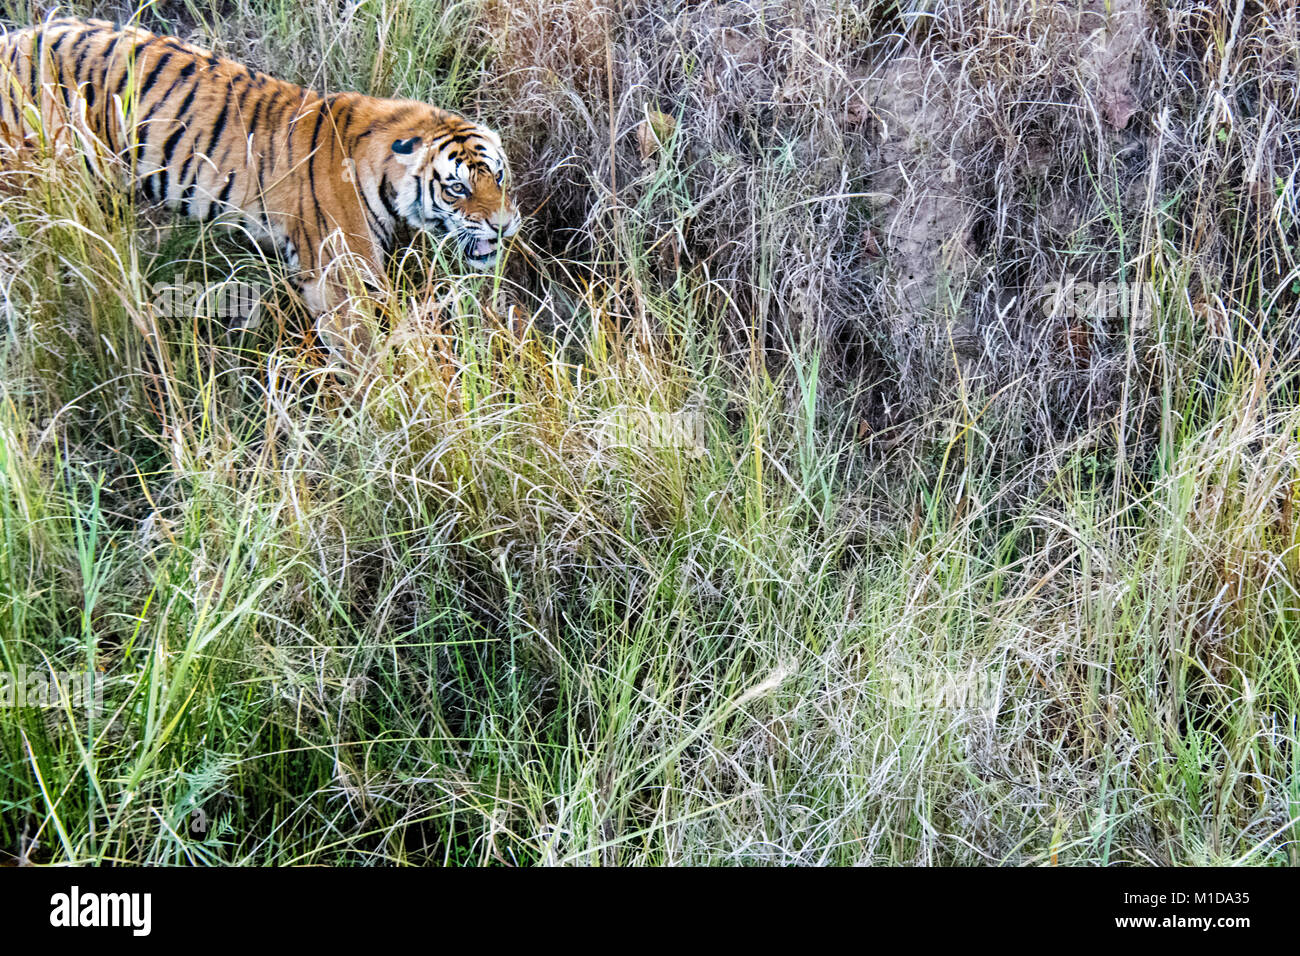 Wild Bengal Tiger, Panthera tigris tigris, snarling, attacking in Bandhavgarh Tiger Reserve, Madhya Pradesh, India - Stock Image